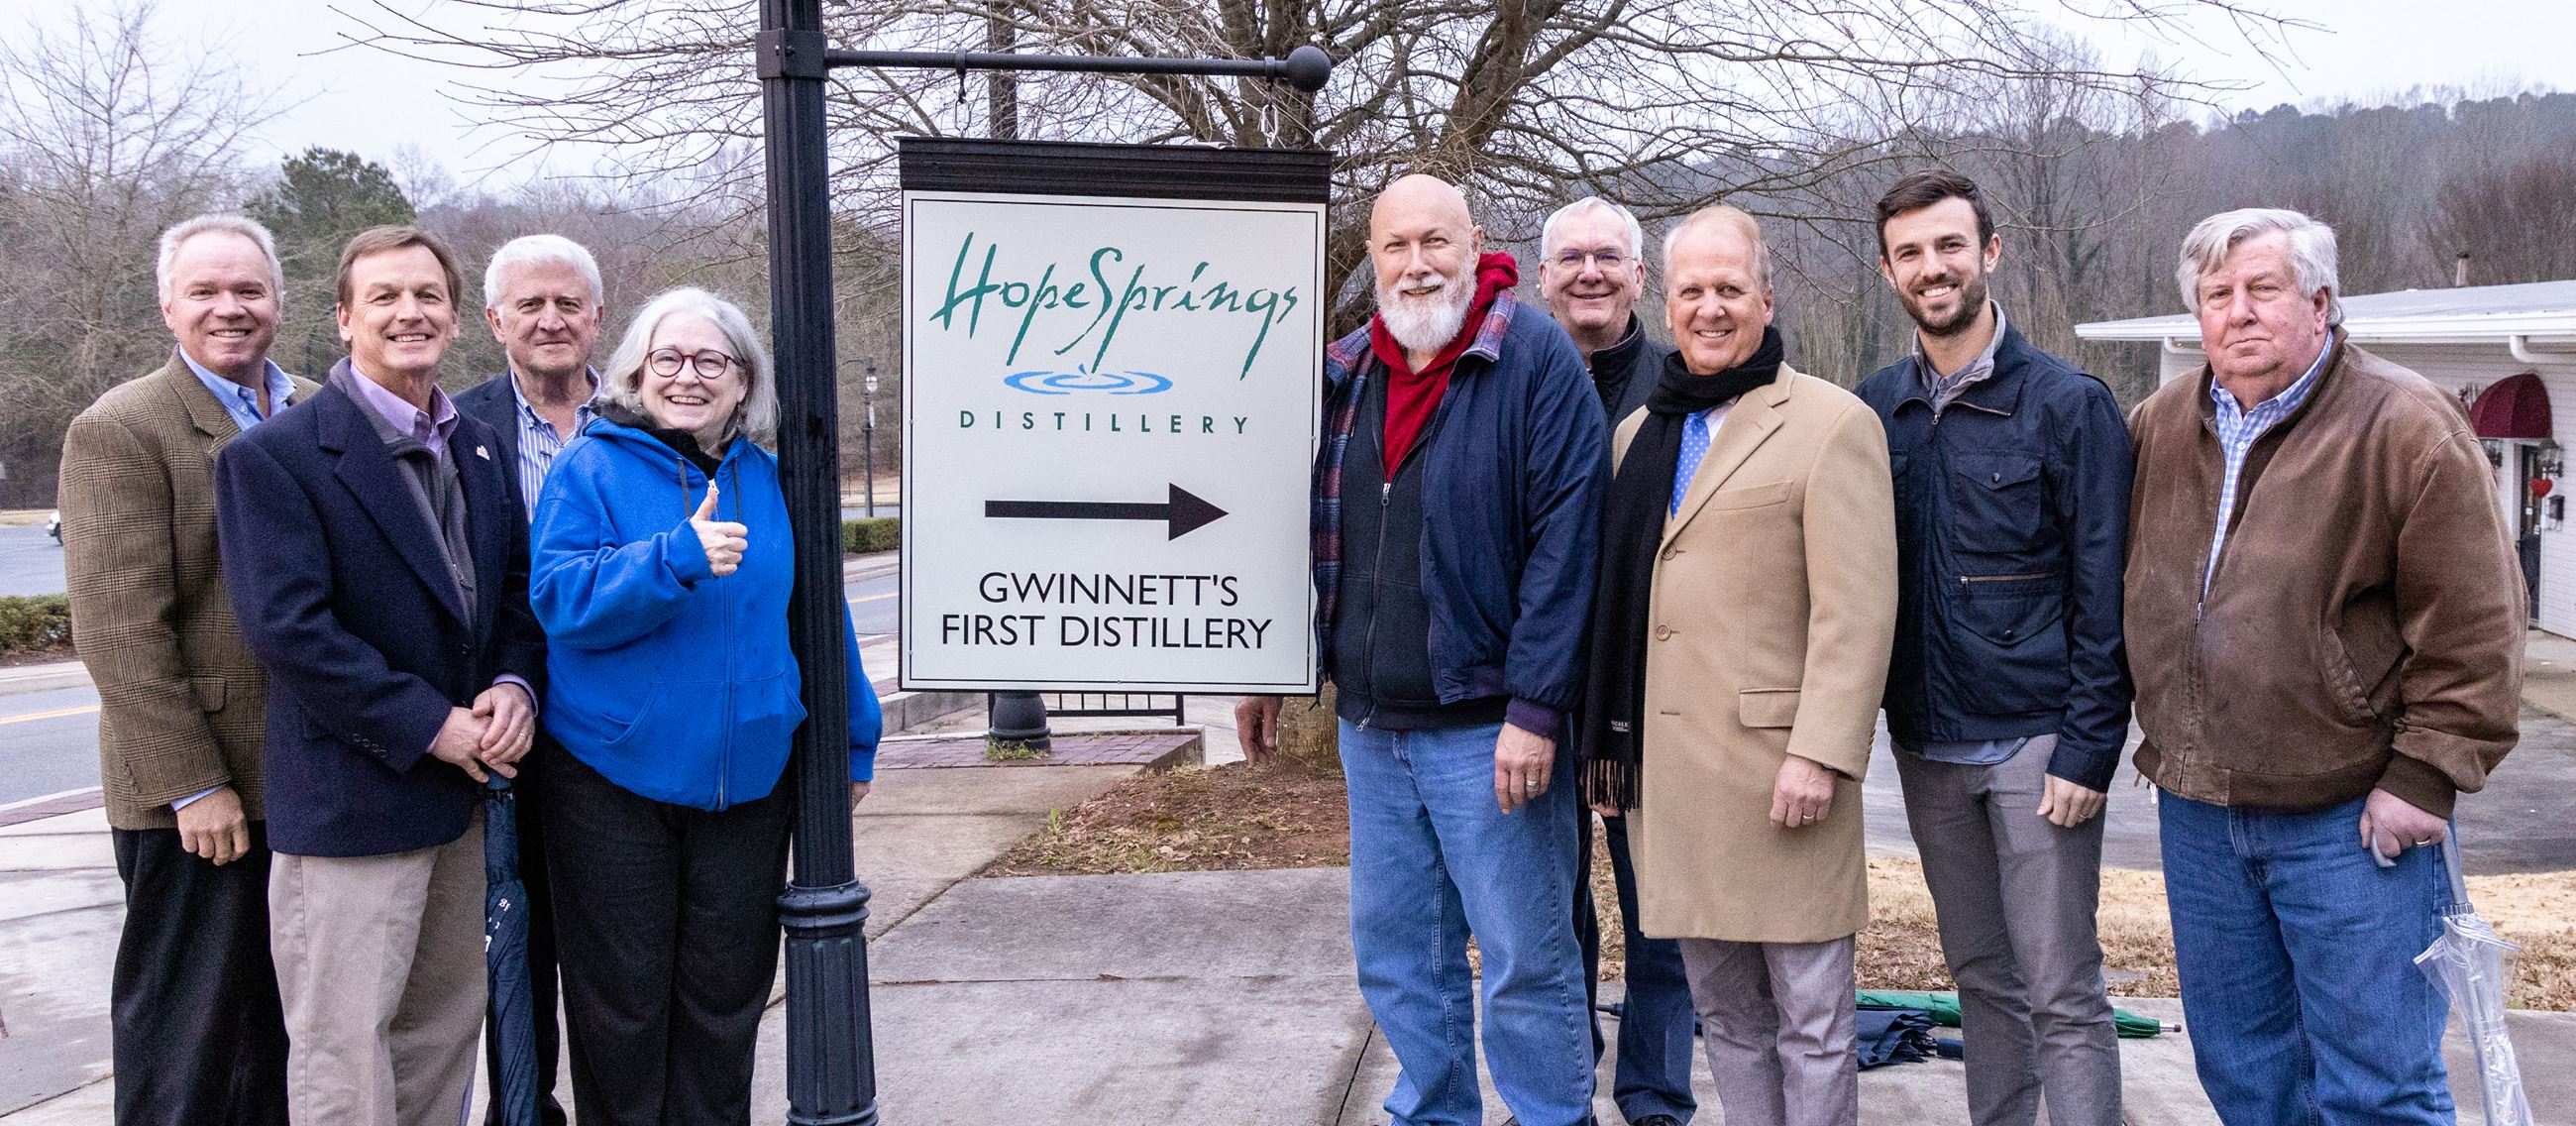 Hope Springs Distillery sign unveiling 2.11.19